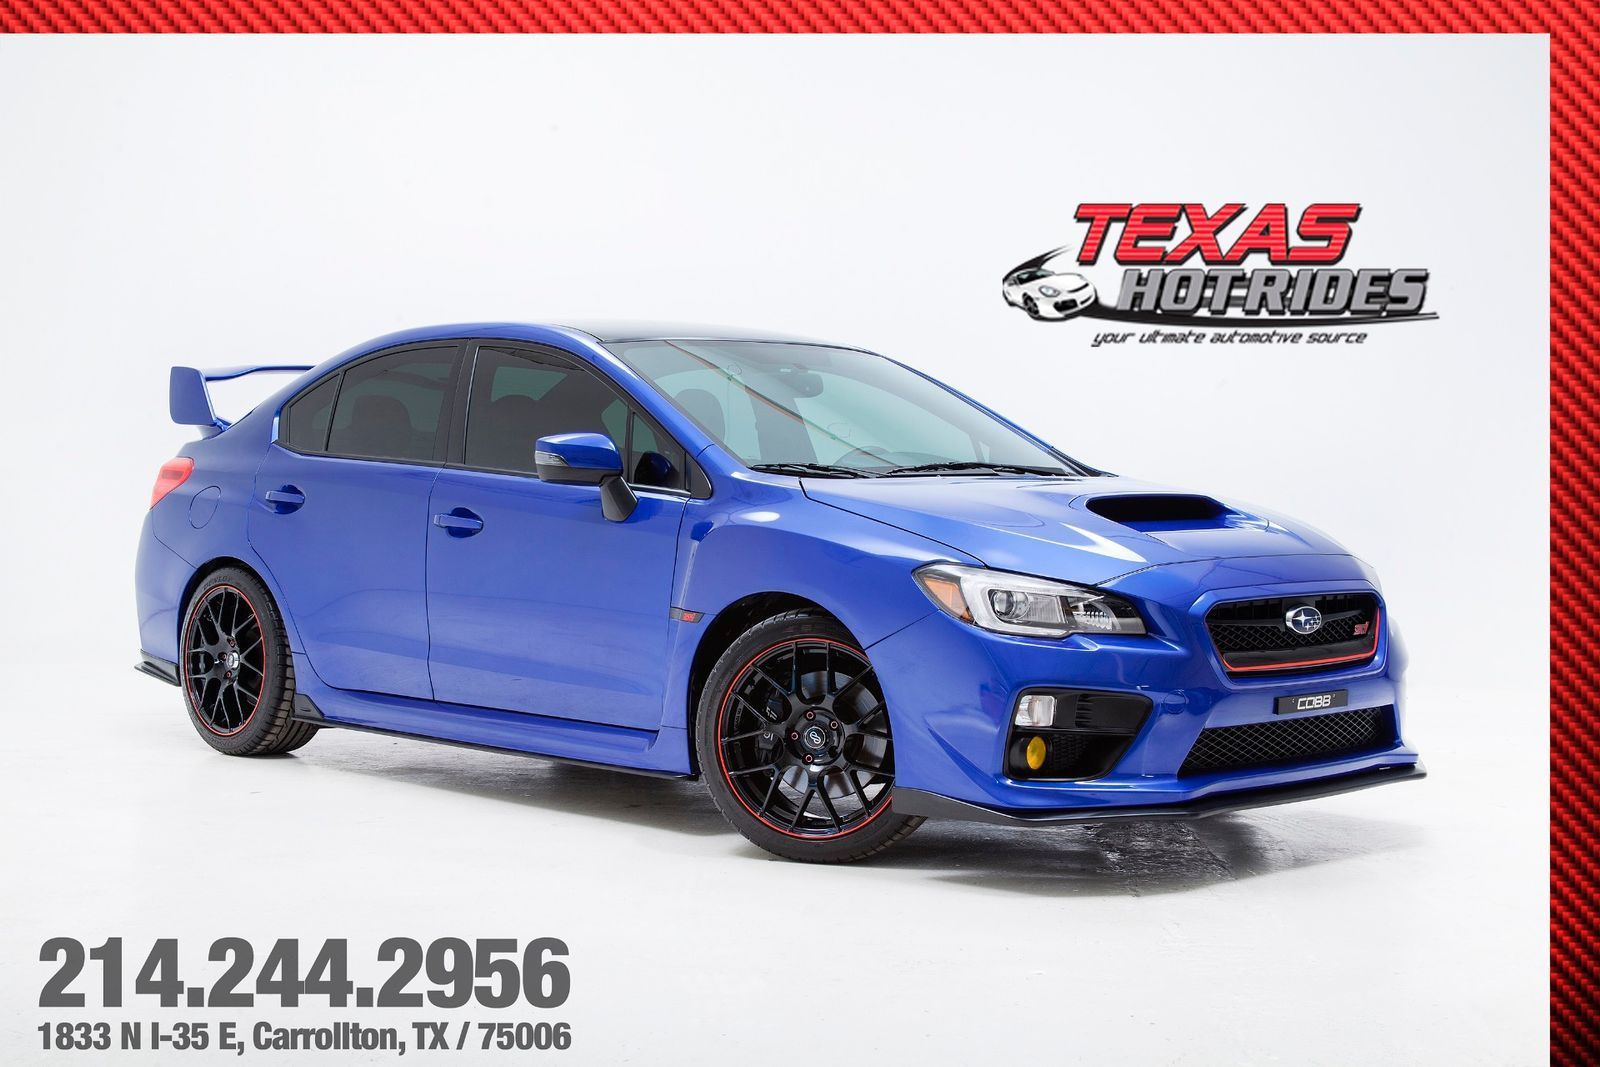 Used 2016 Subaru Wrx Cobb Stage 2 With Many Upgrades 2016 Subaru Impreza Wrx Sti Sedan Cobb Stage 2 With Many Upgrades Must See 2017 2018 24carshop Com